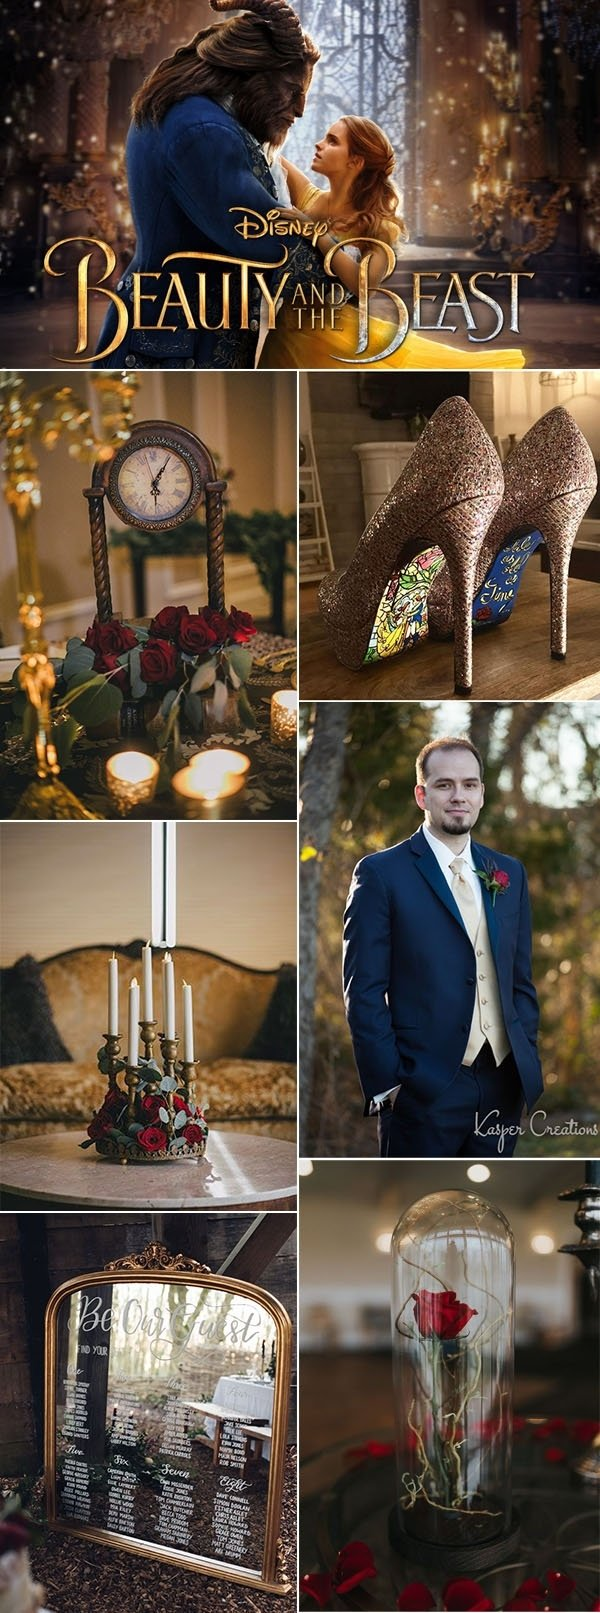 10 Gorgeous Beauty And The Beast Wedding Theme Ideas the perfect glitter and sparkle winter wedding ideascolor and 2020